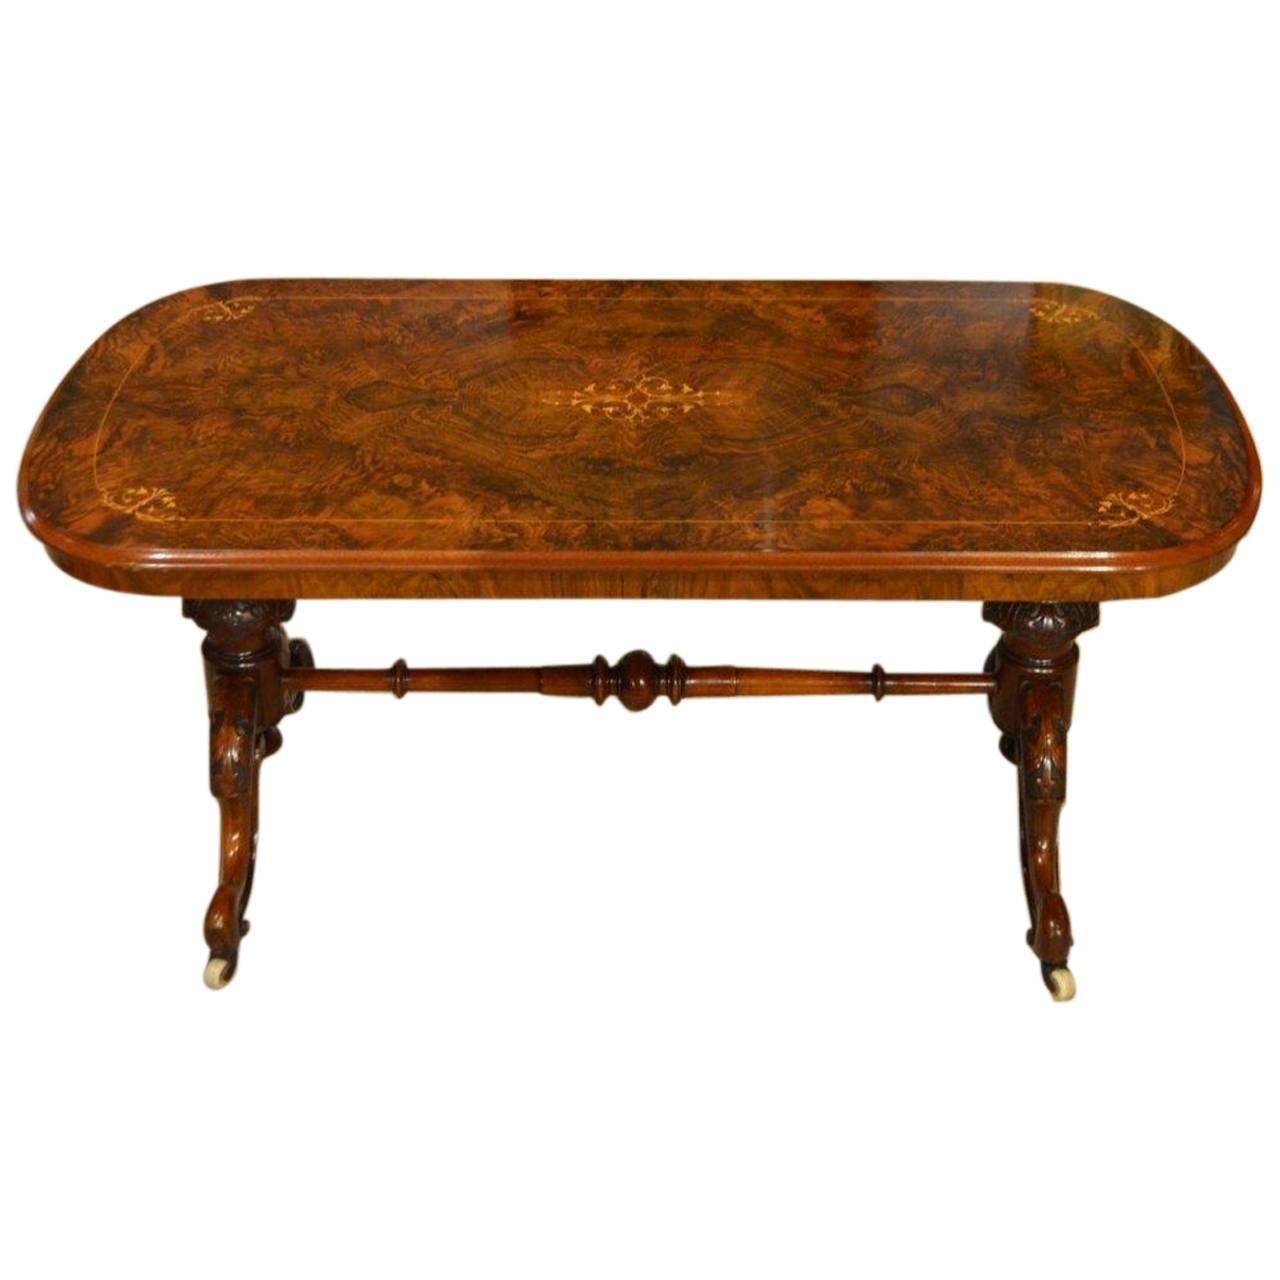 A Burr Walnut And Marquetry Inlaid Victorian Period